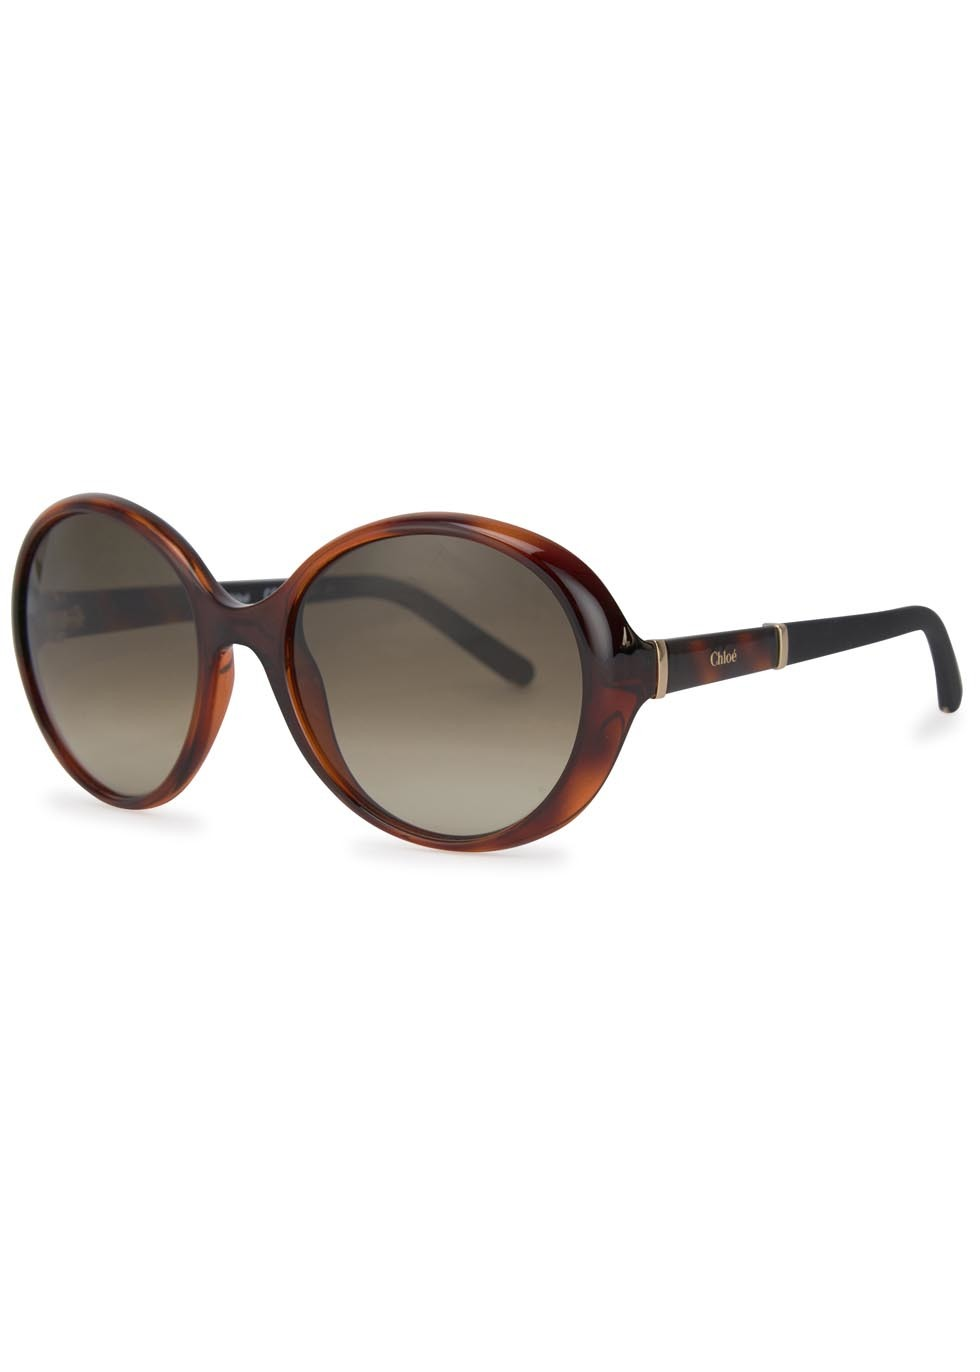 Daisy Tortoiseshell Round Frame Sunglasses - predominant colour: chocolate brown; occasions: casual, holiday; style: round; size: large; material: plastic/rubber; pattern: tortoiseshell; finish: plain; season: a/w 2015; wardrobe: basic